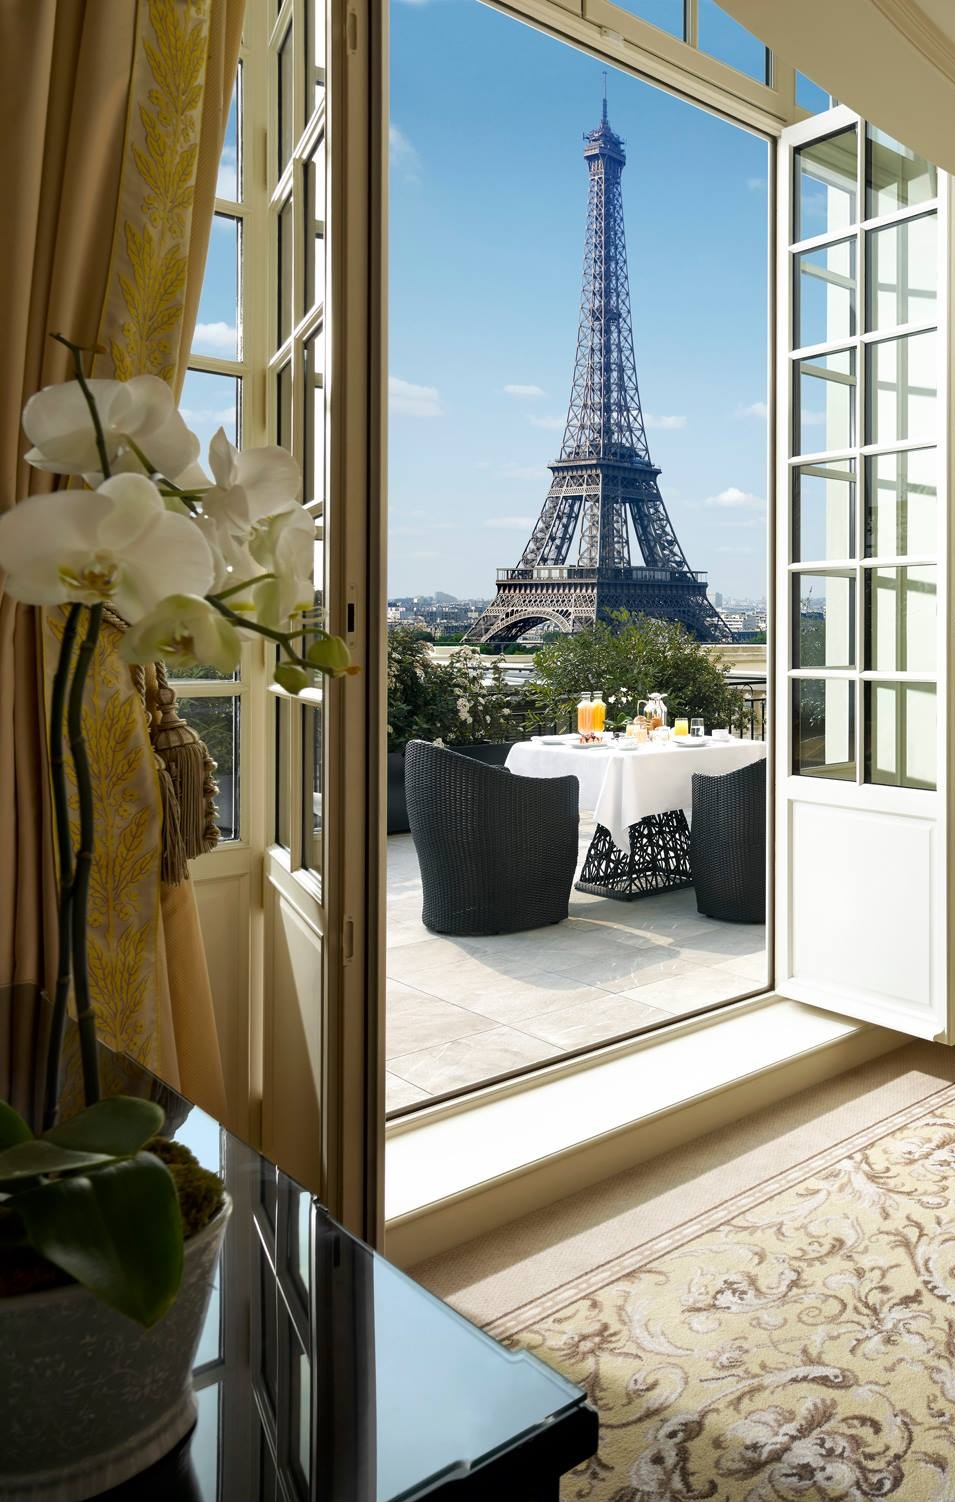 The Top 10 Fashionable Hotels You Should Visit In Paris